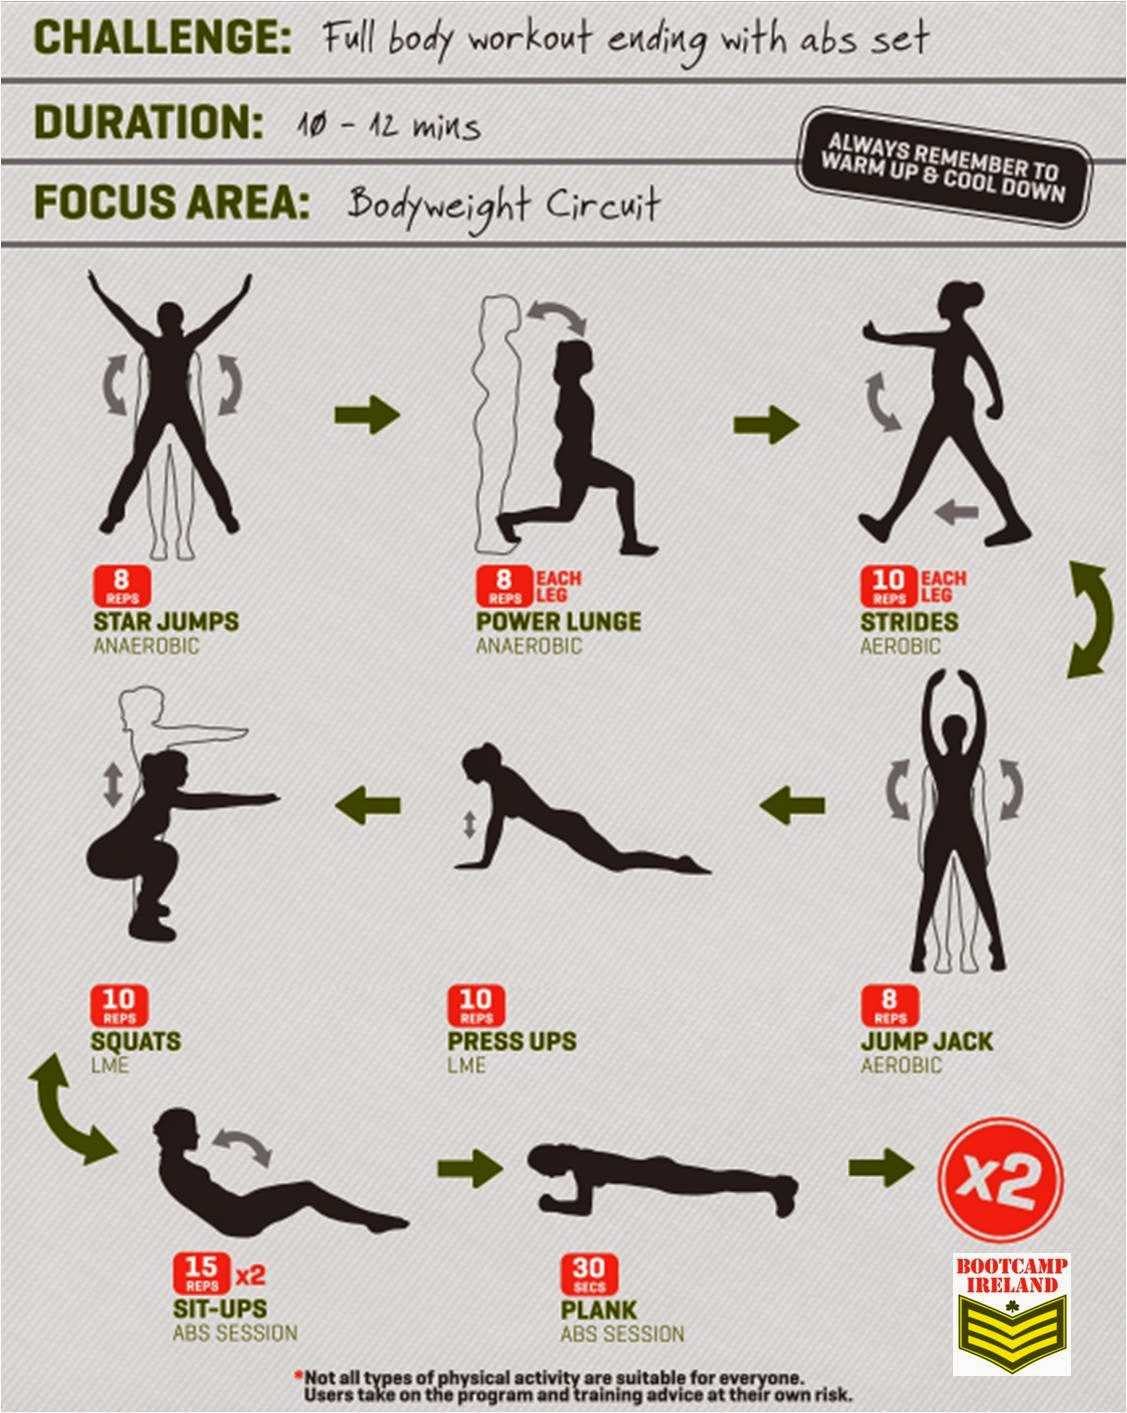 Workout Exercises All Body Superset Style Circuit Bootcamp Ideas Pictures Of